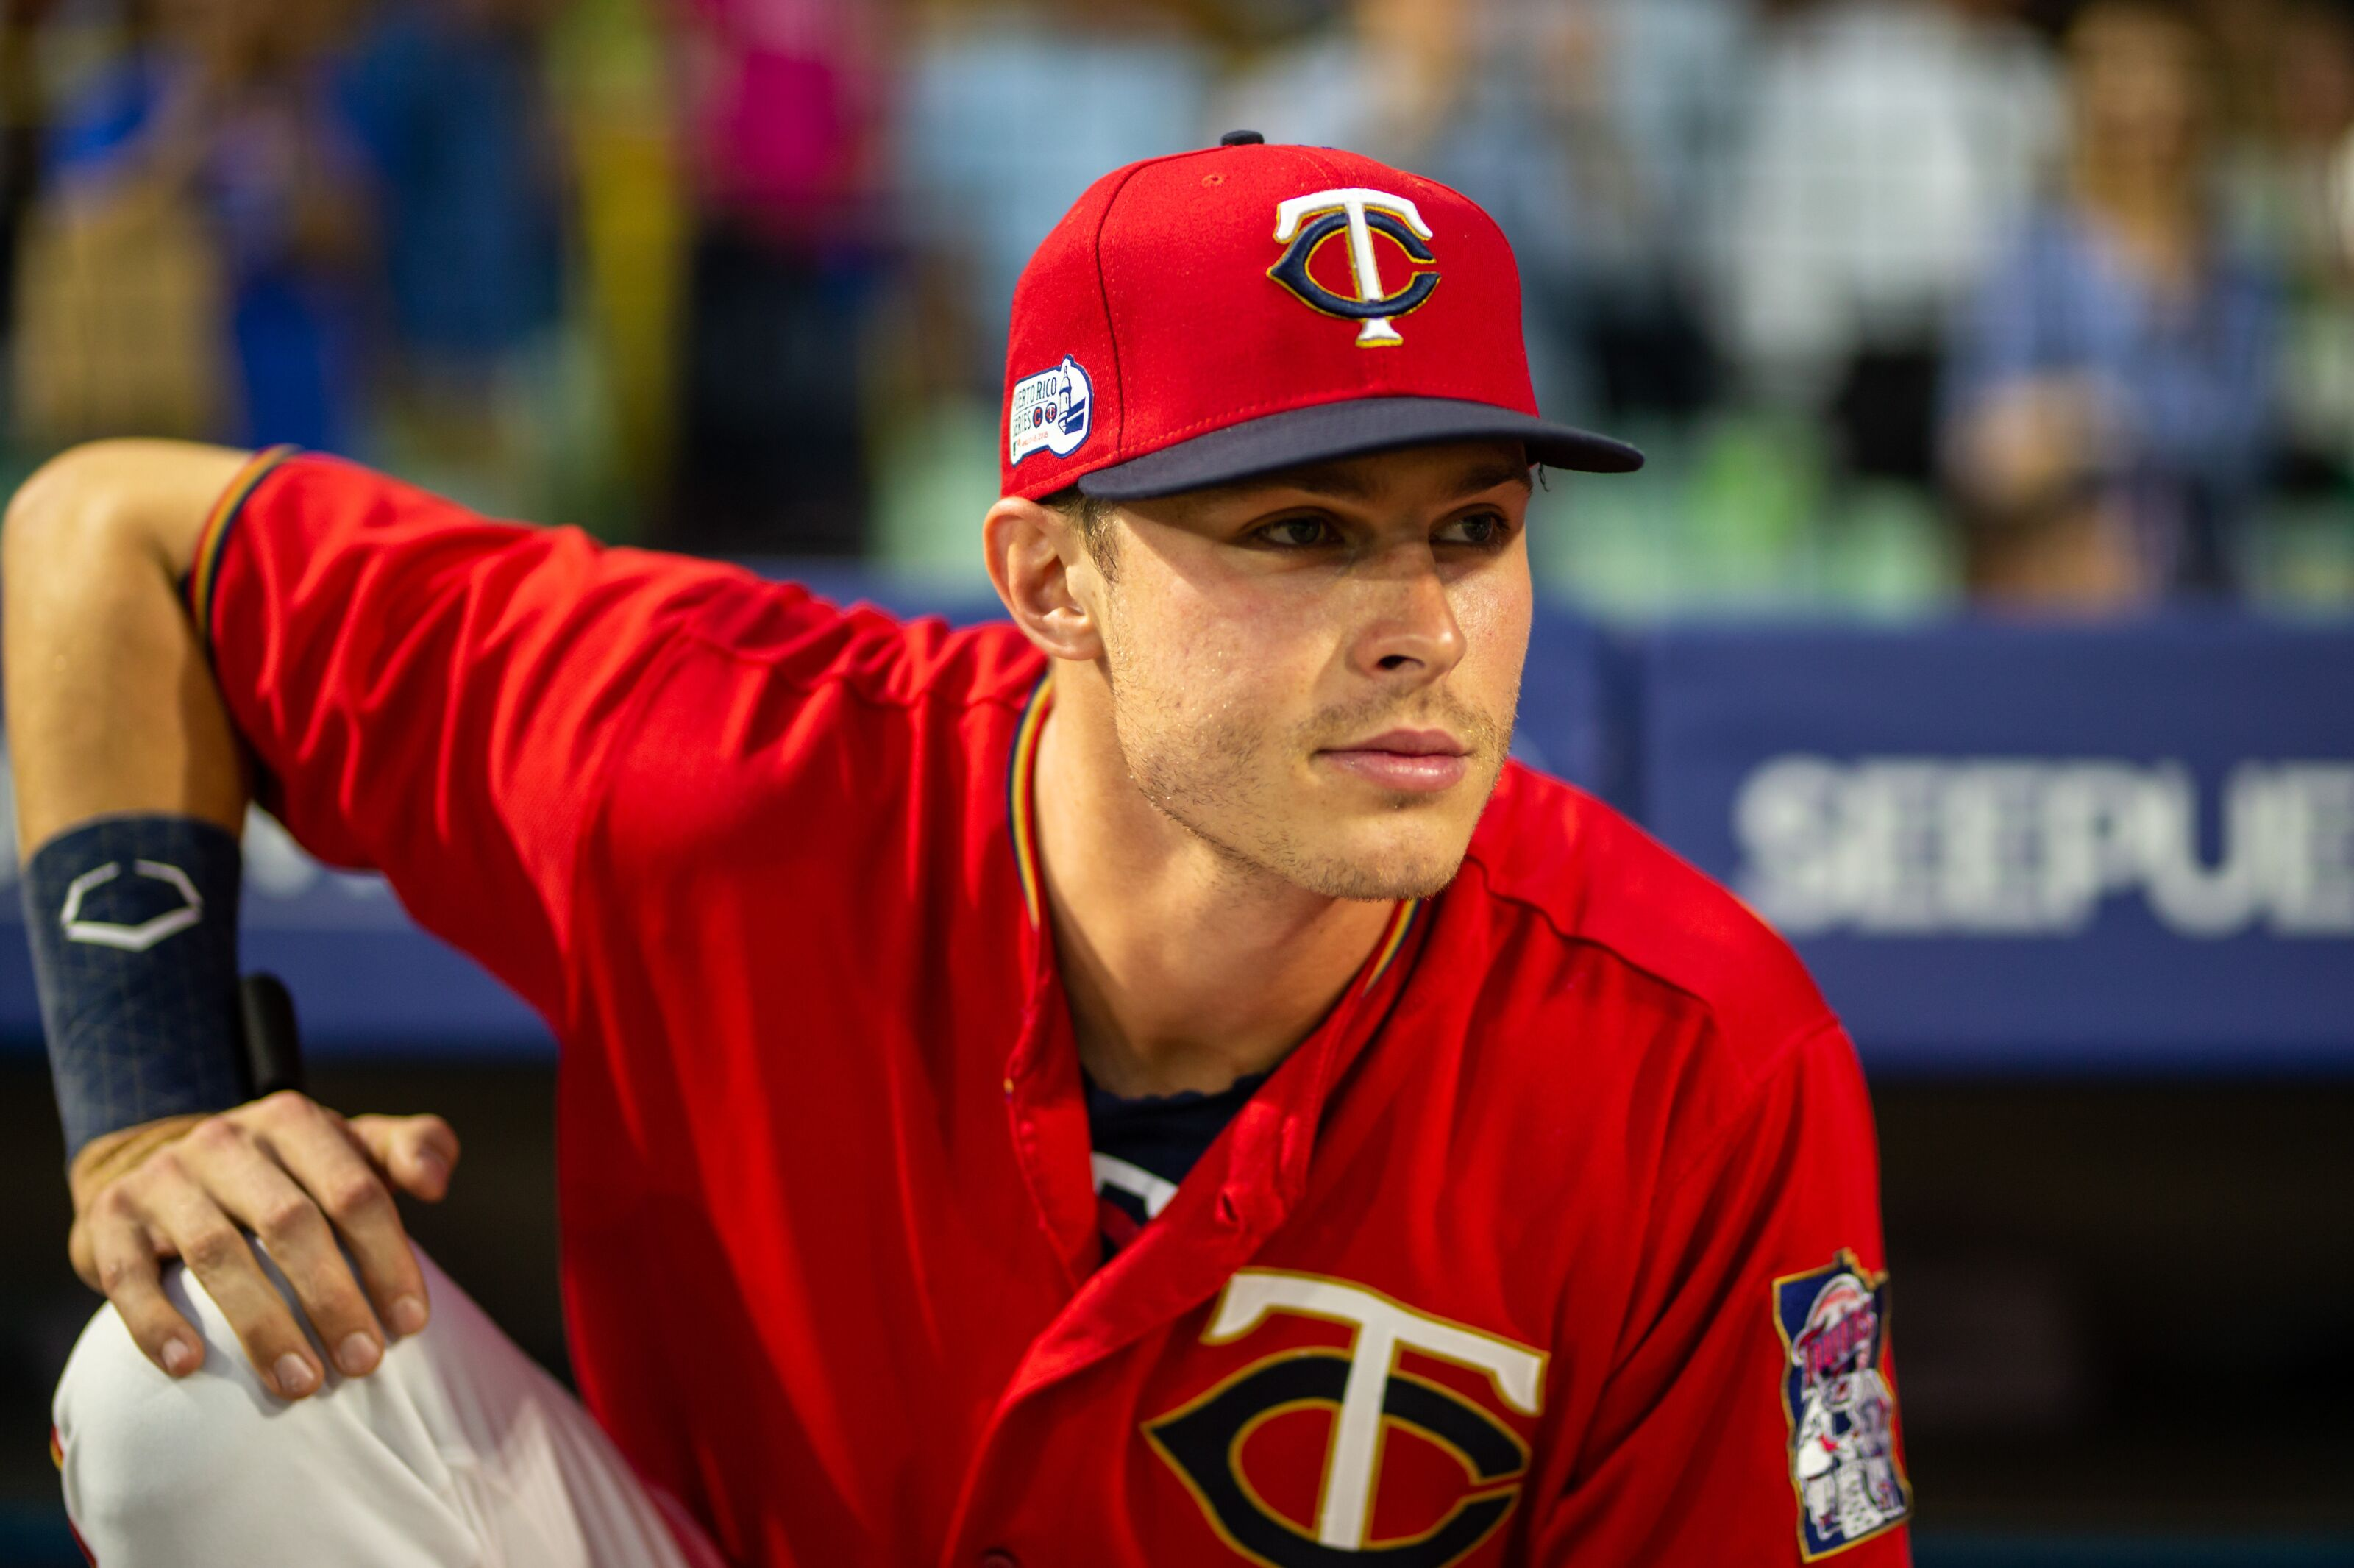 Minnesota Twins: Max Kepler emerges from the forgotten